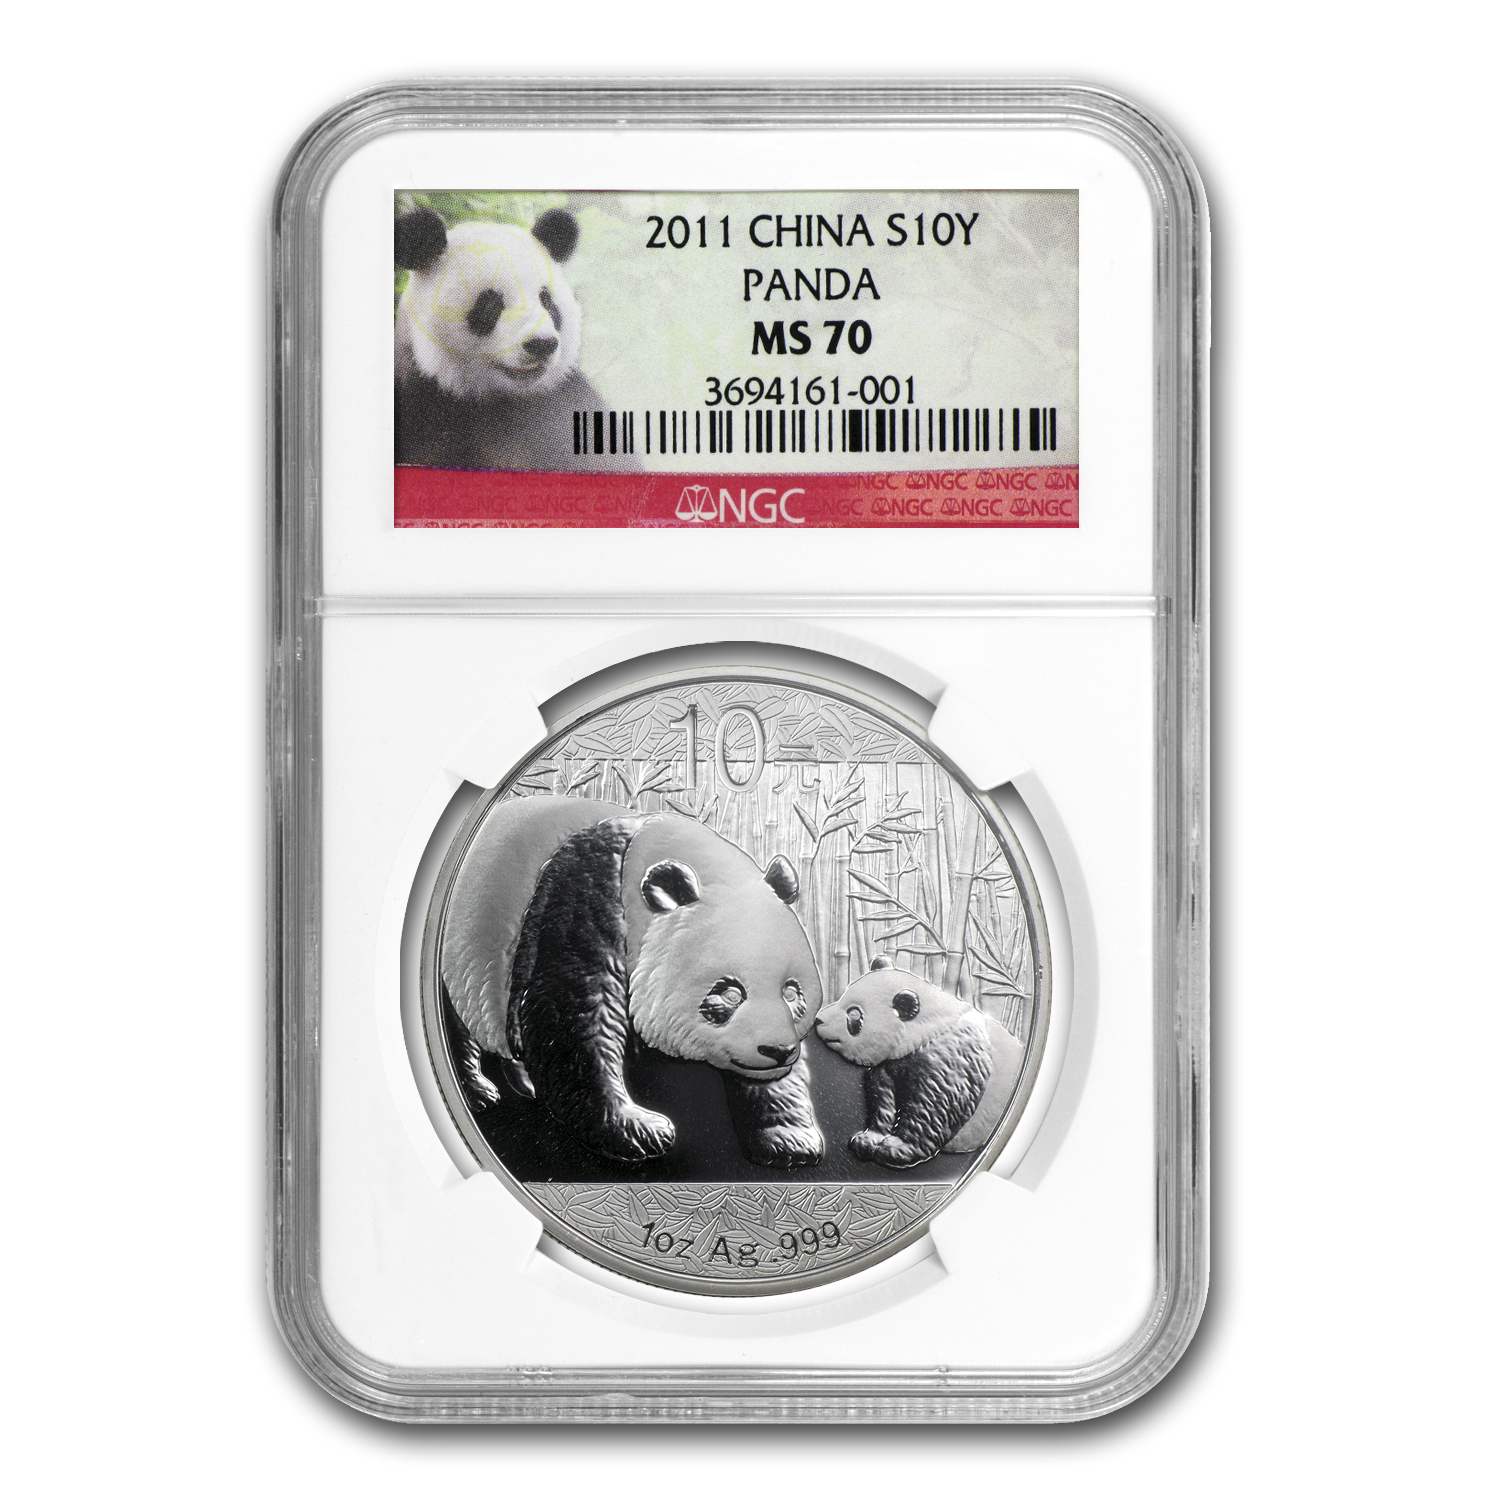 2011 China 1 oz Silver Panda MS-70 NGC